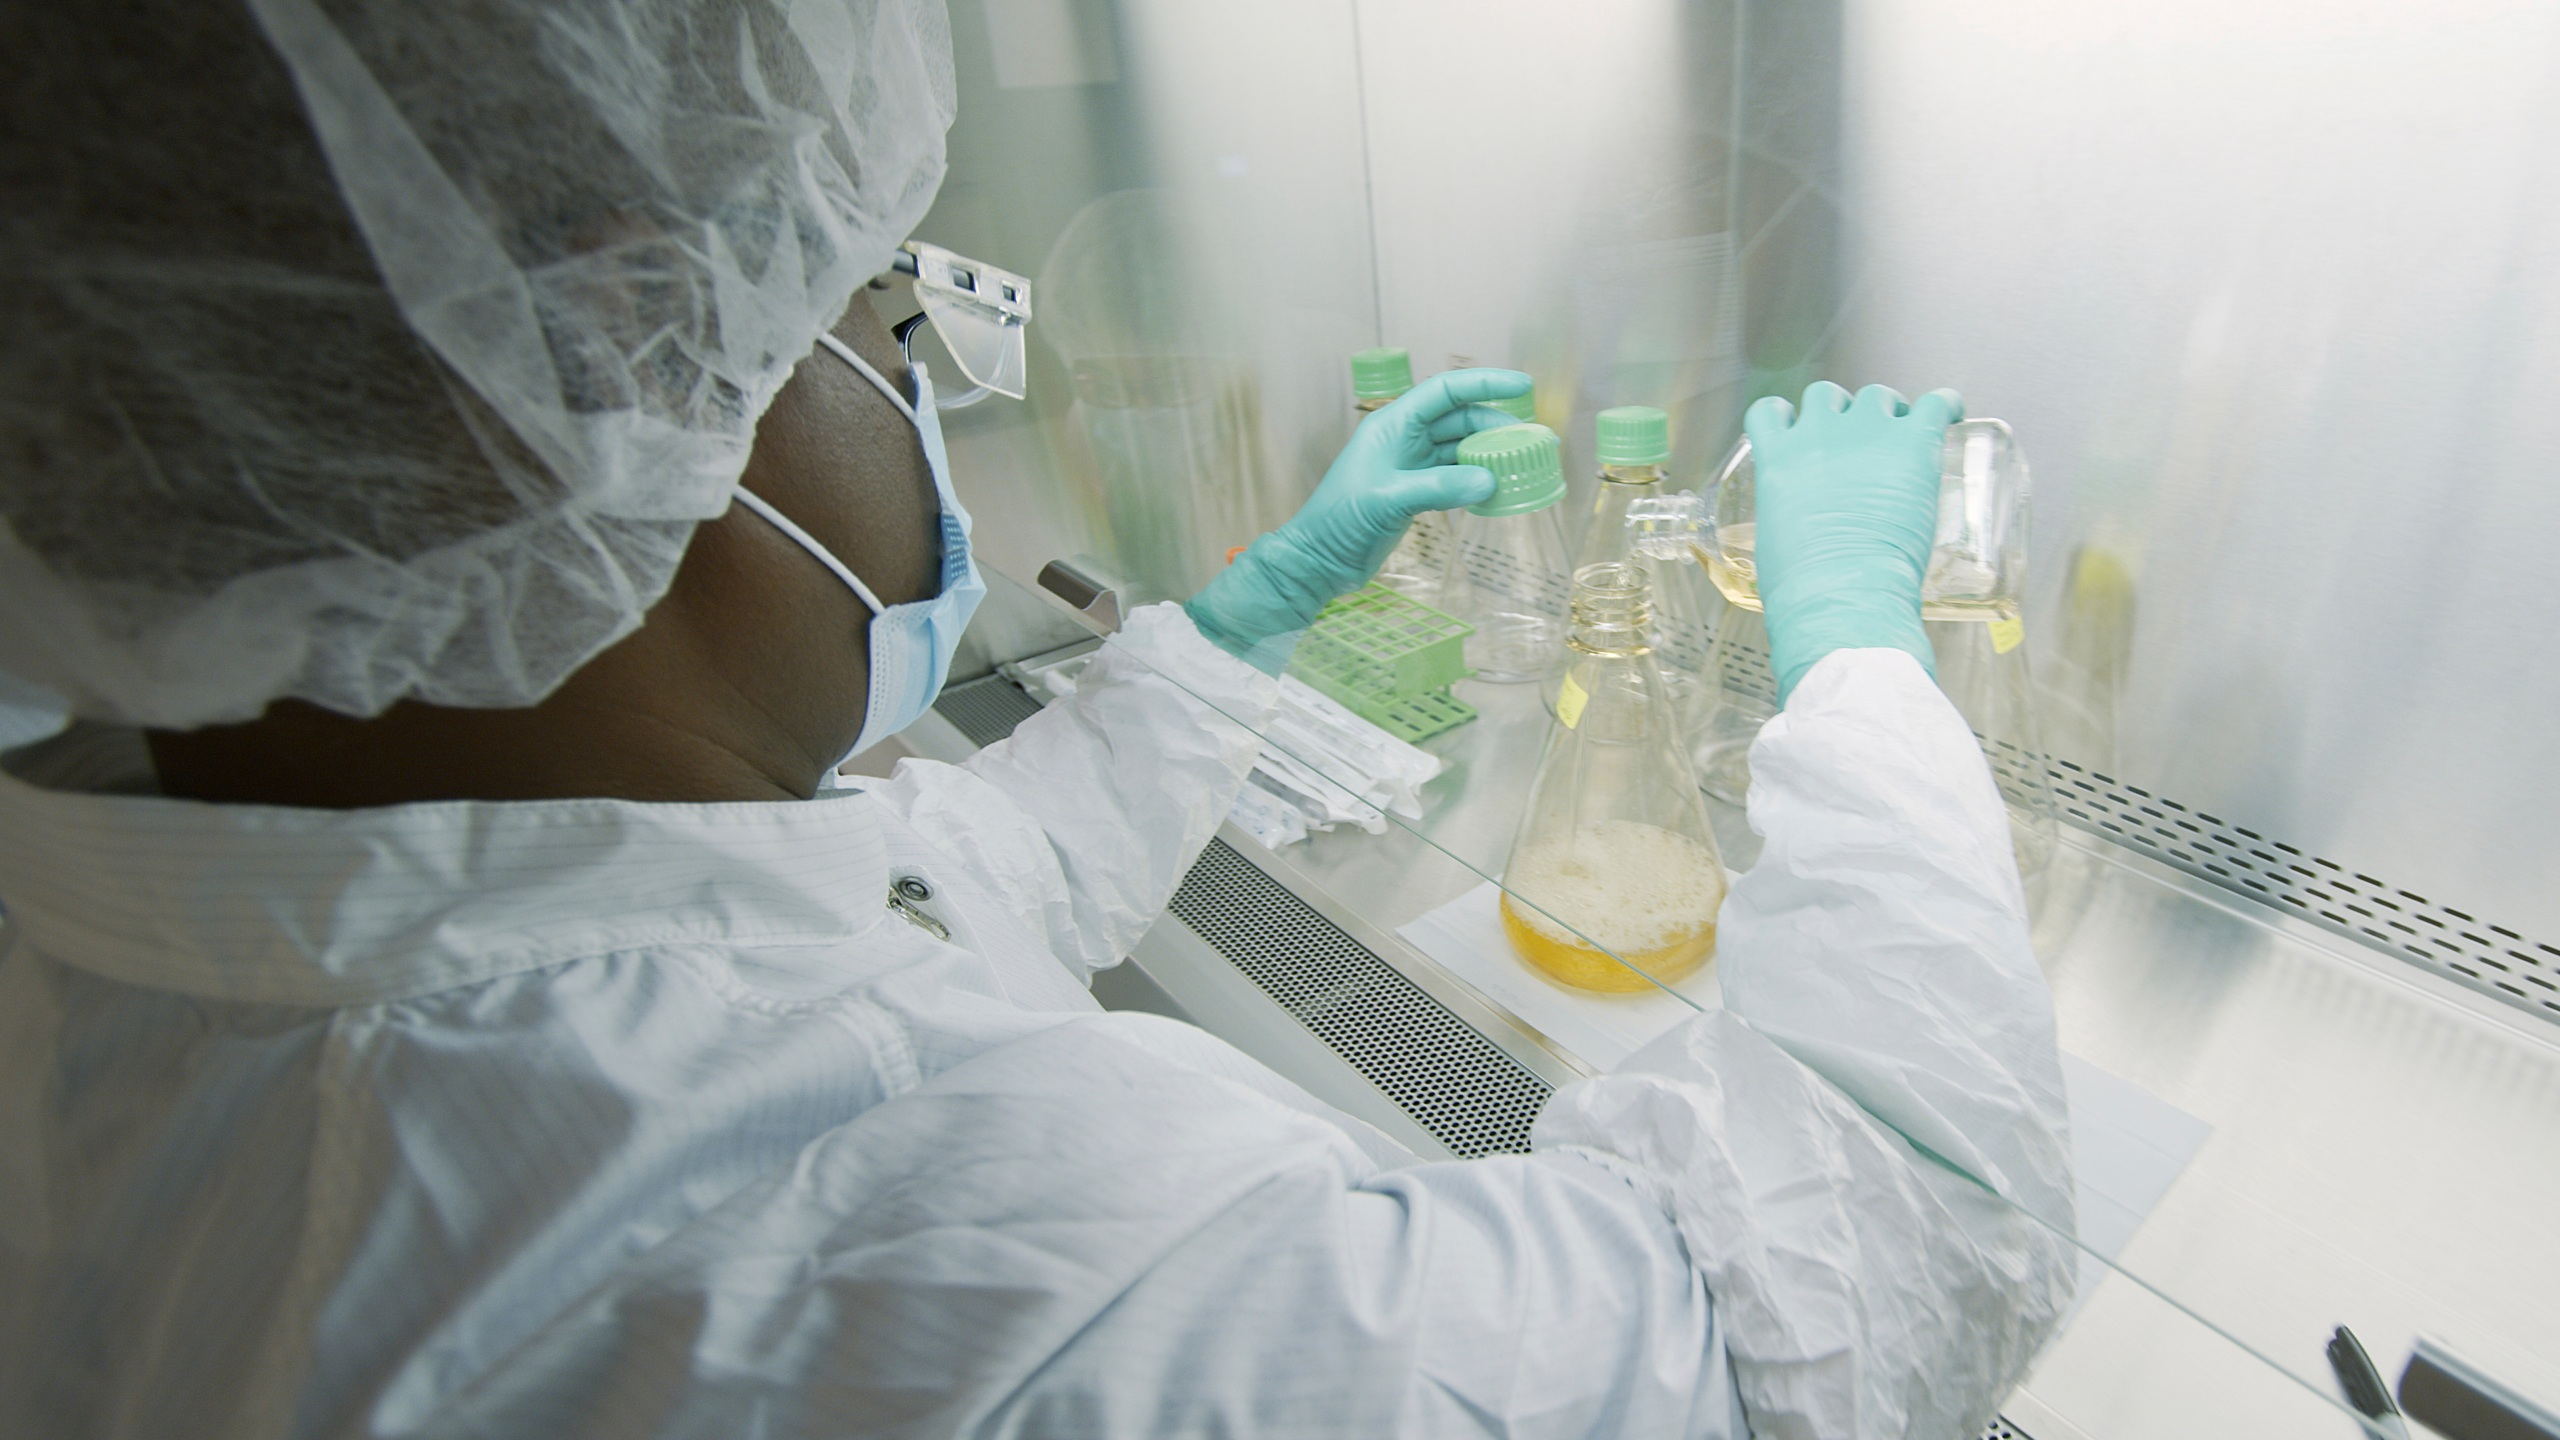 In this May 2020 file photo provided by Eli Lilly, a researcher tests possible COVID-19 antibodies in a laboratory in Indianapolis. (David Morrison/Eli Lilly via AP)